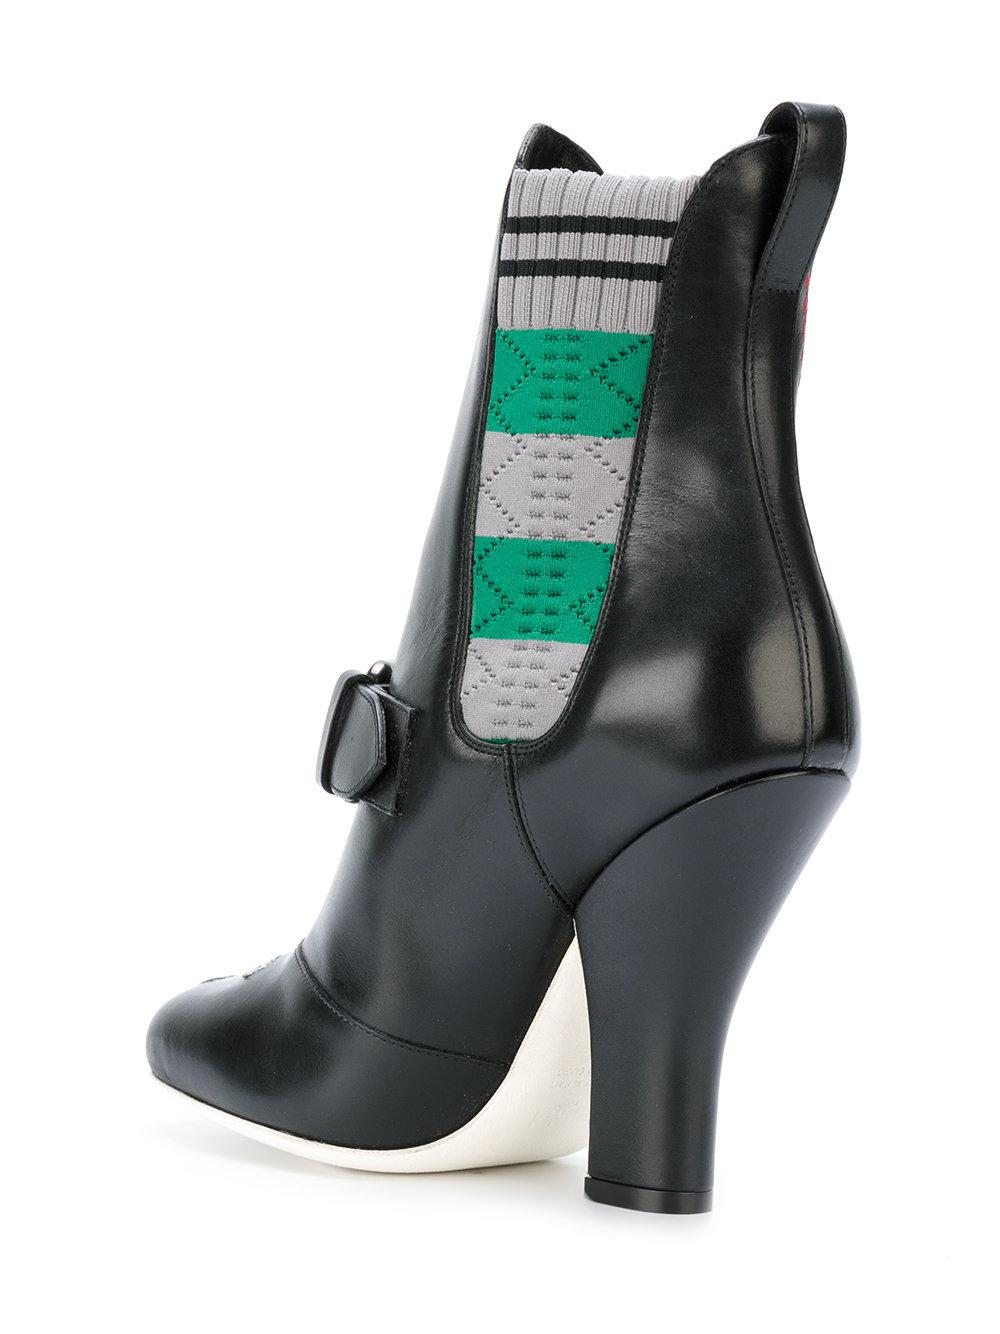 Fendi Leather Embroidered Ankle Boots in Black